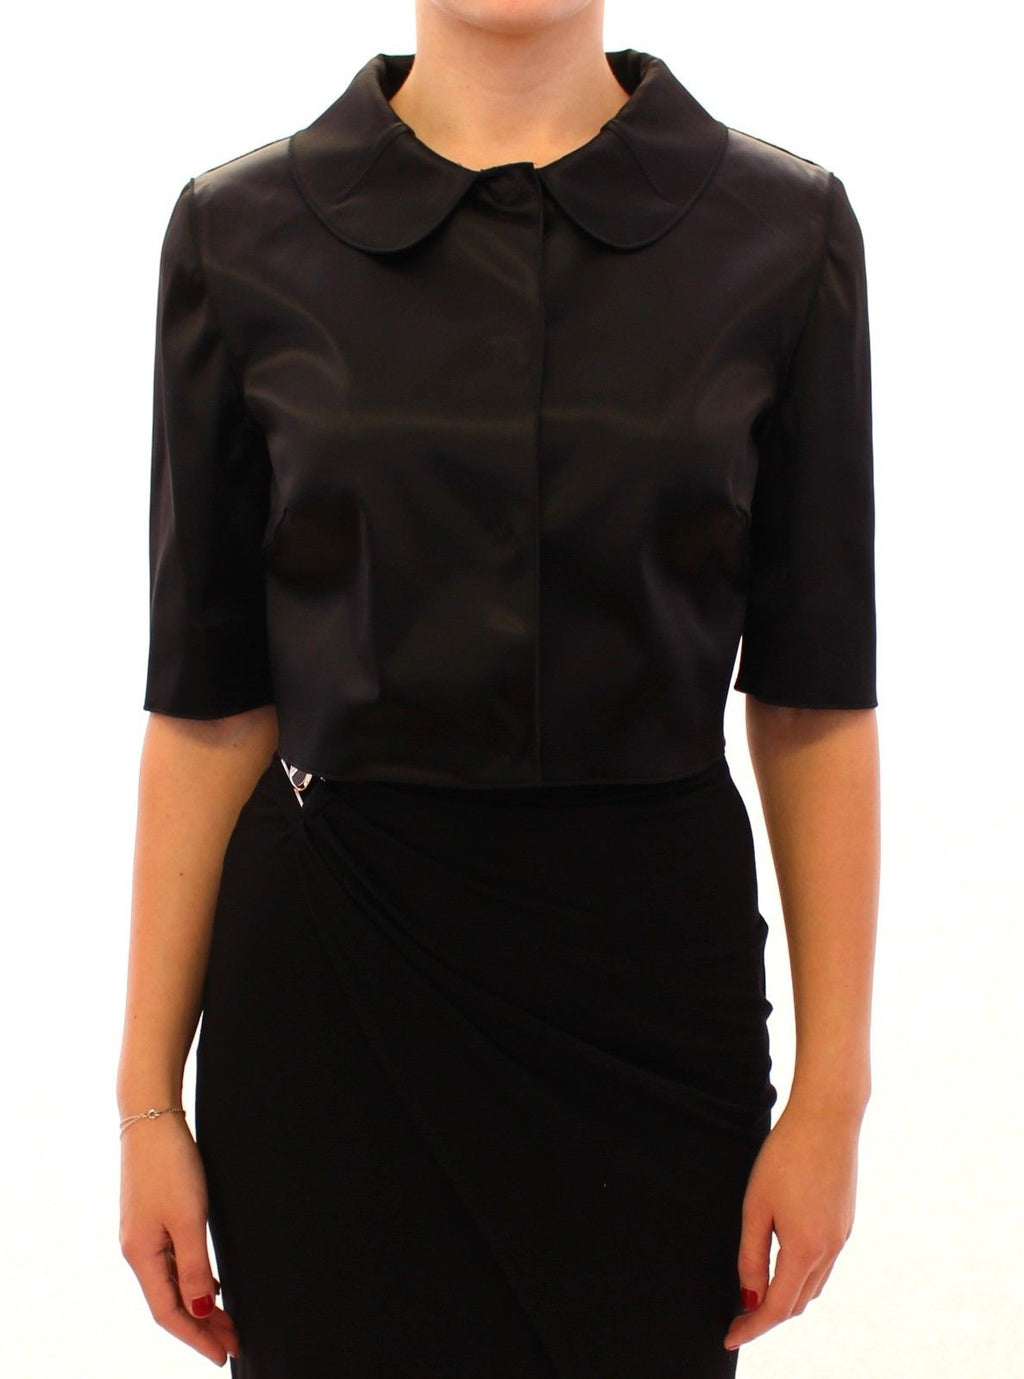 Black Shiny Stretch Bolero Shrug Jacket